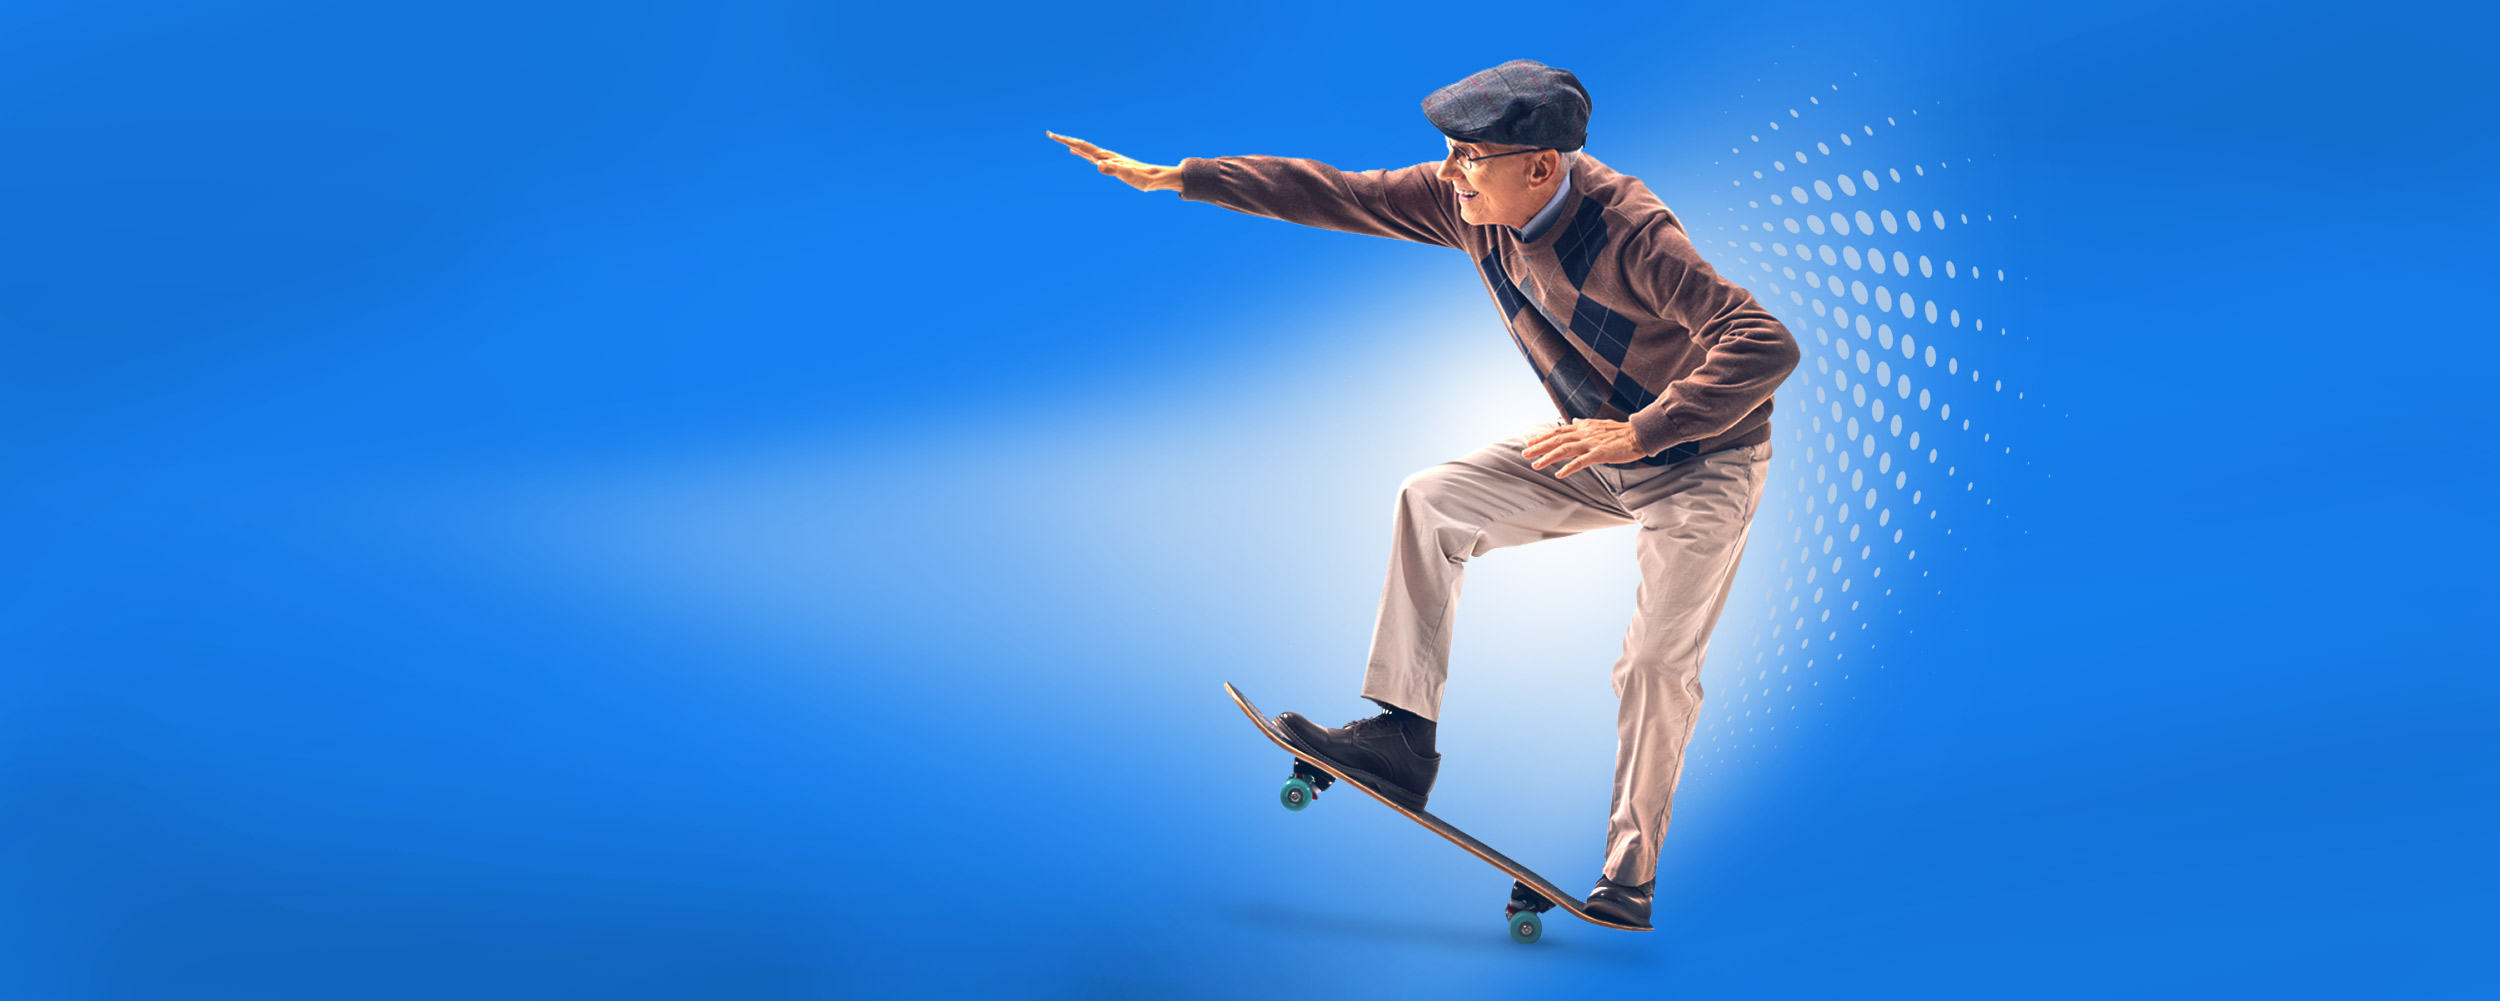 Geriatric Skateboarder